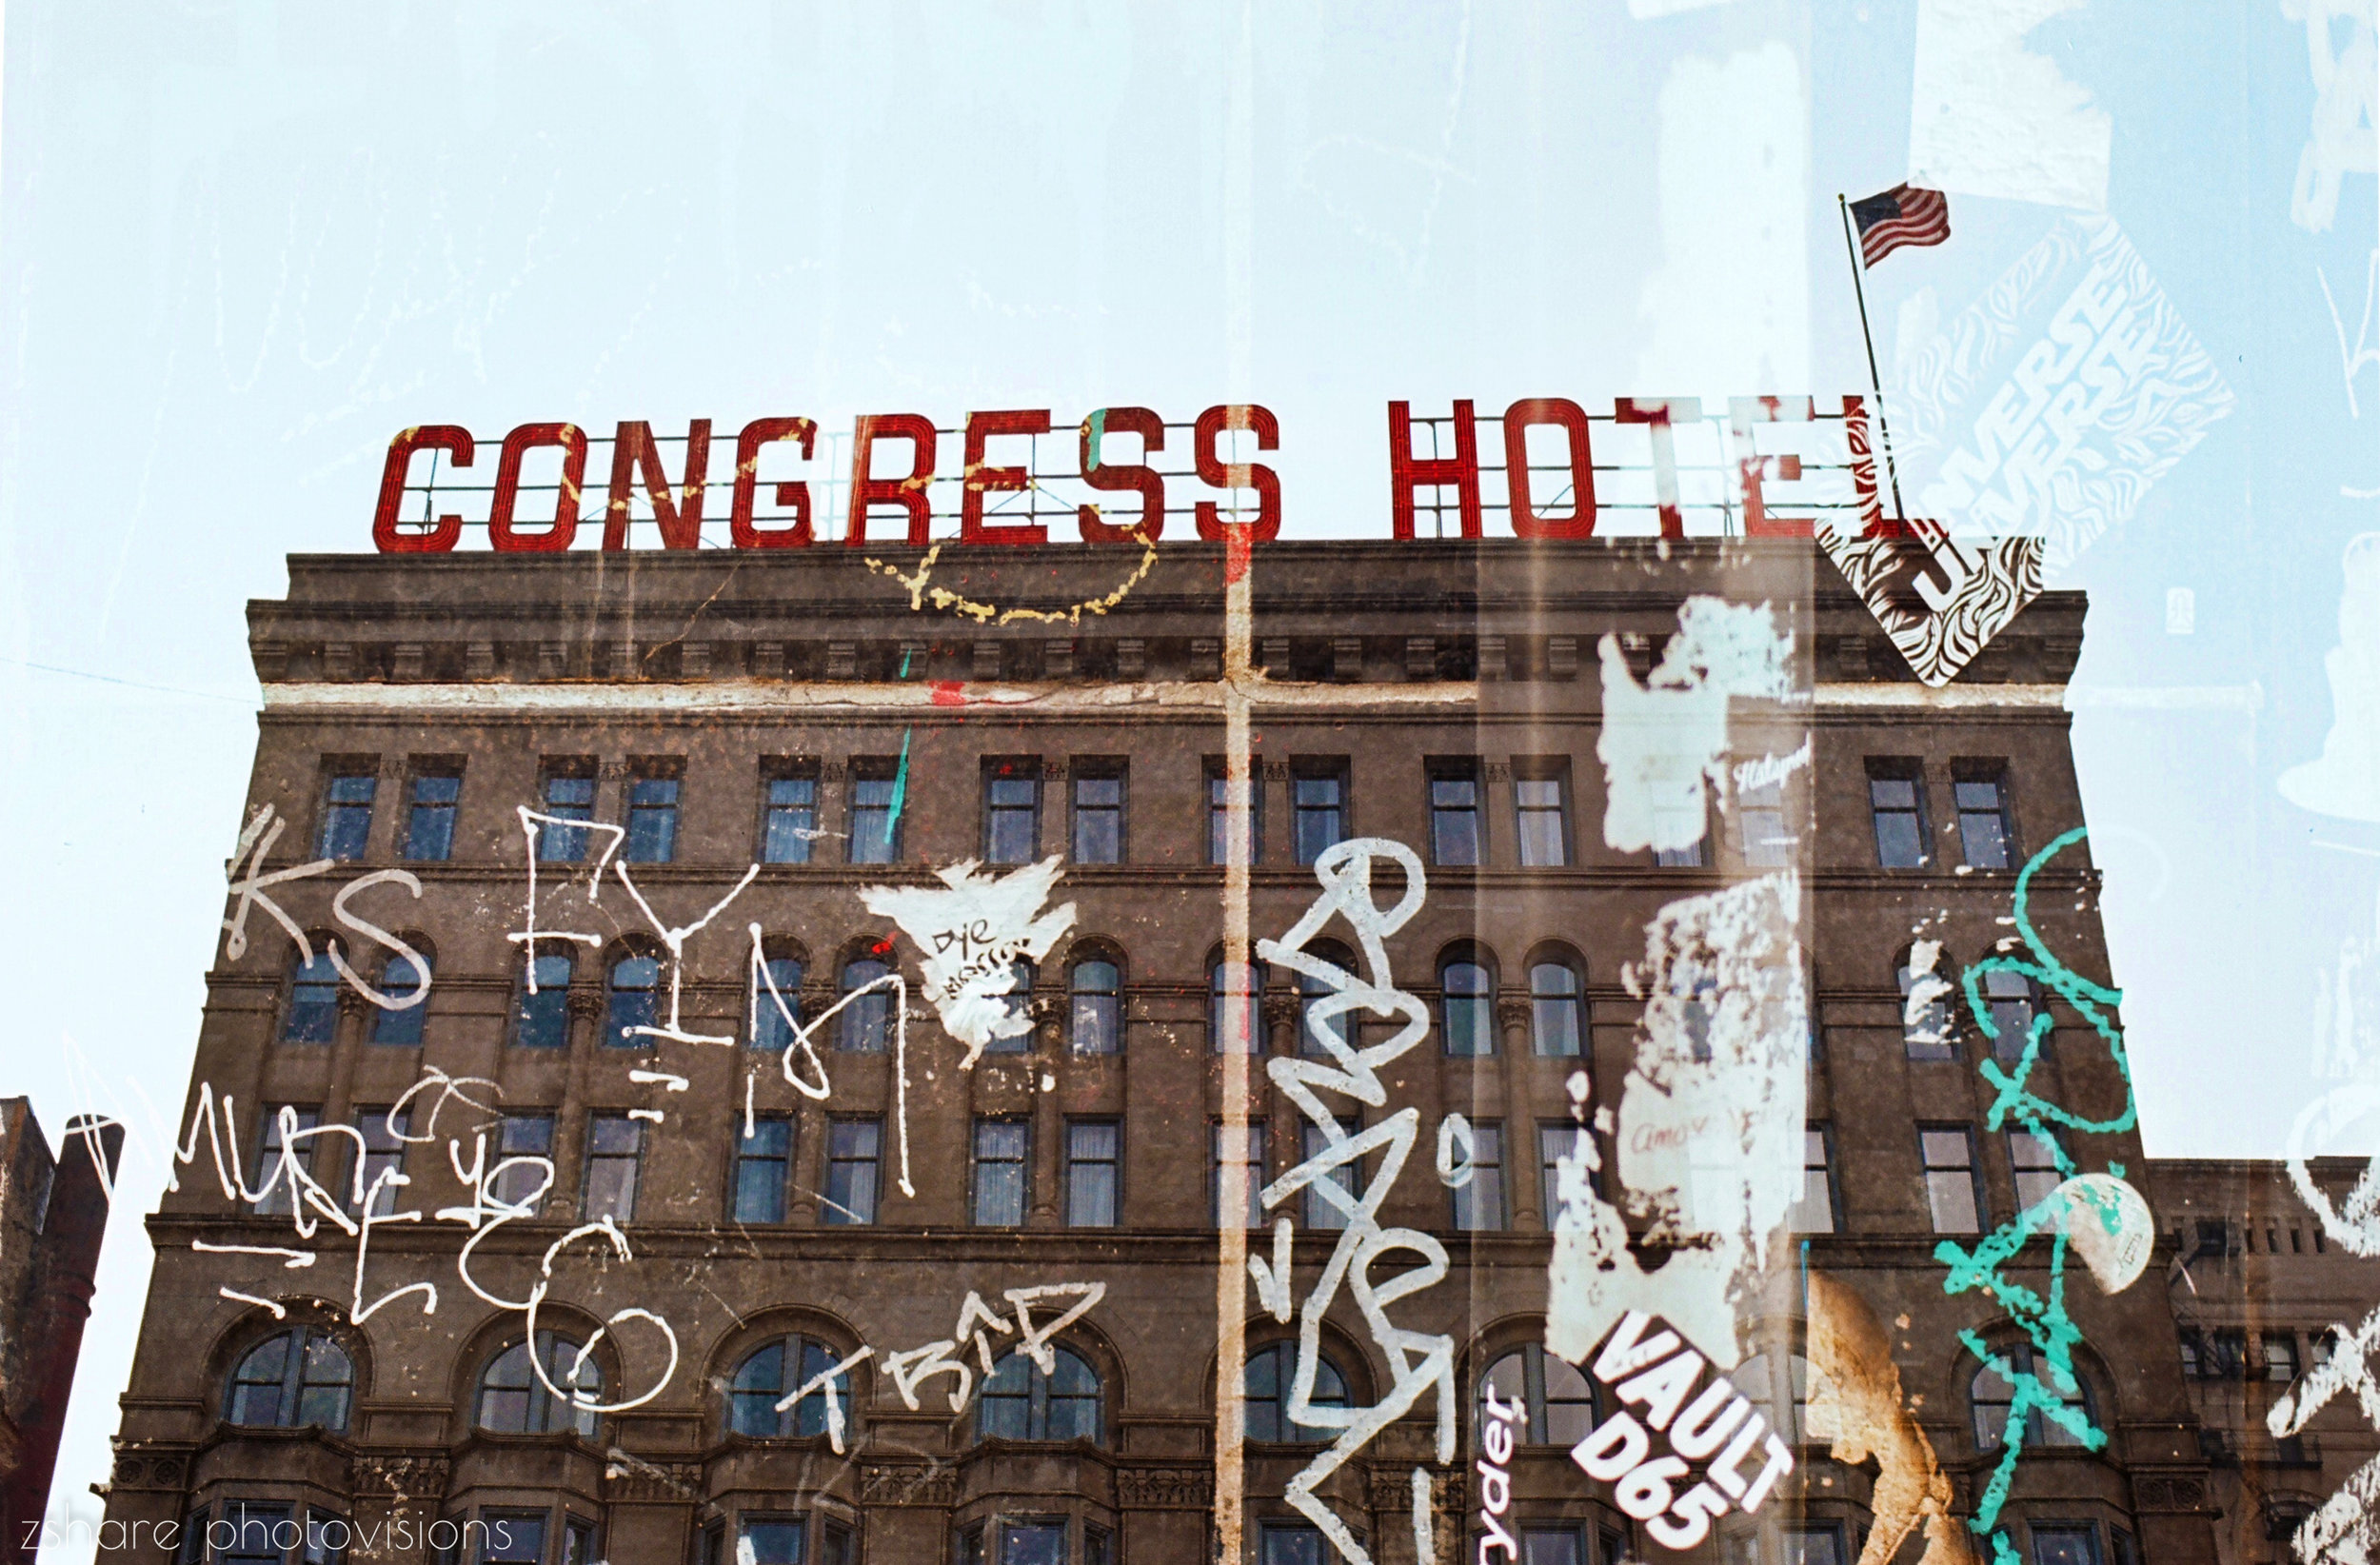 35mm film double exposure photo of the congress hotel in chicago by zshare photovisions .JPG